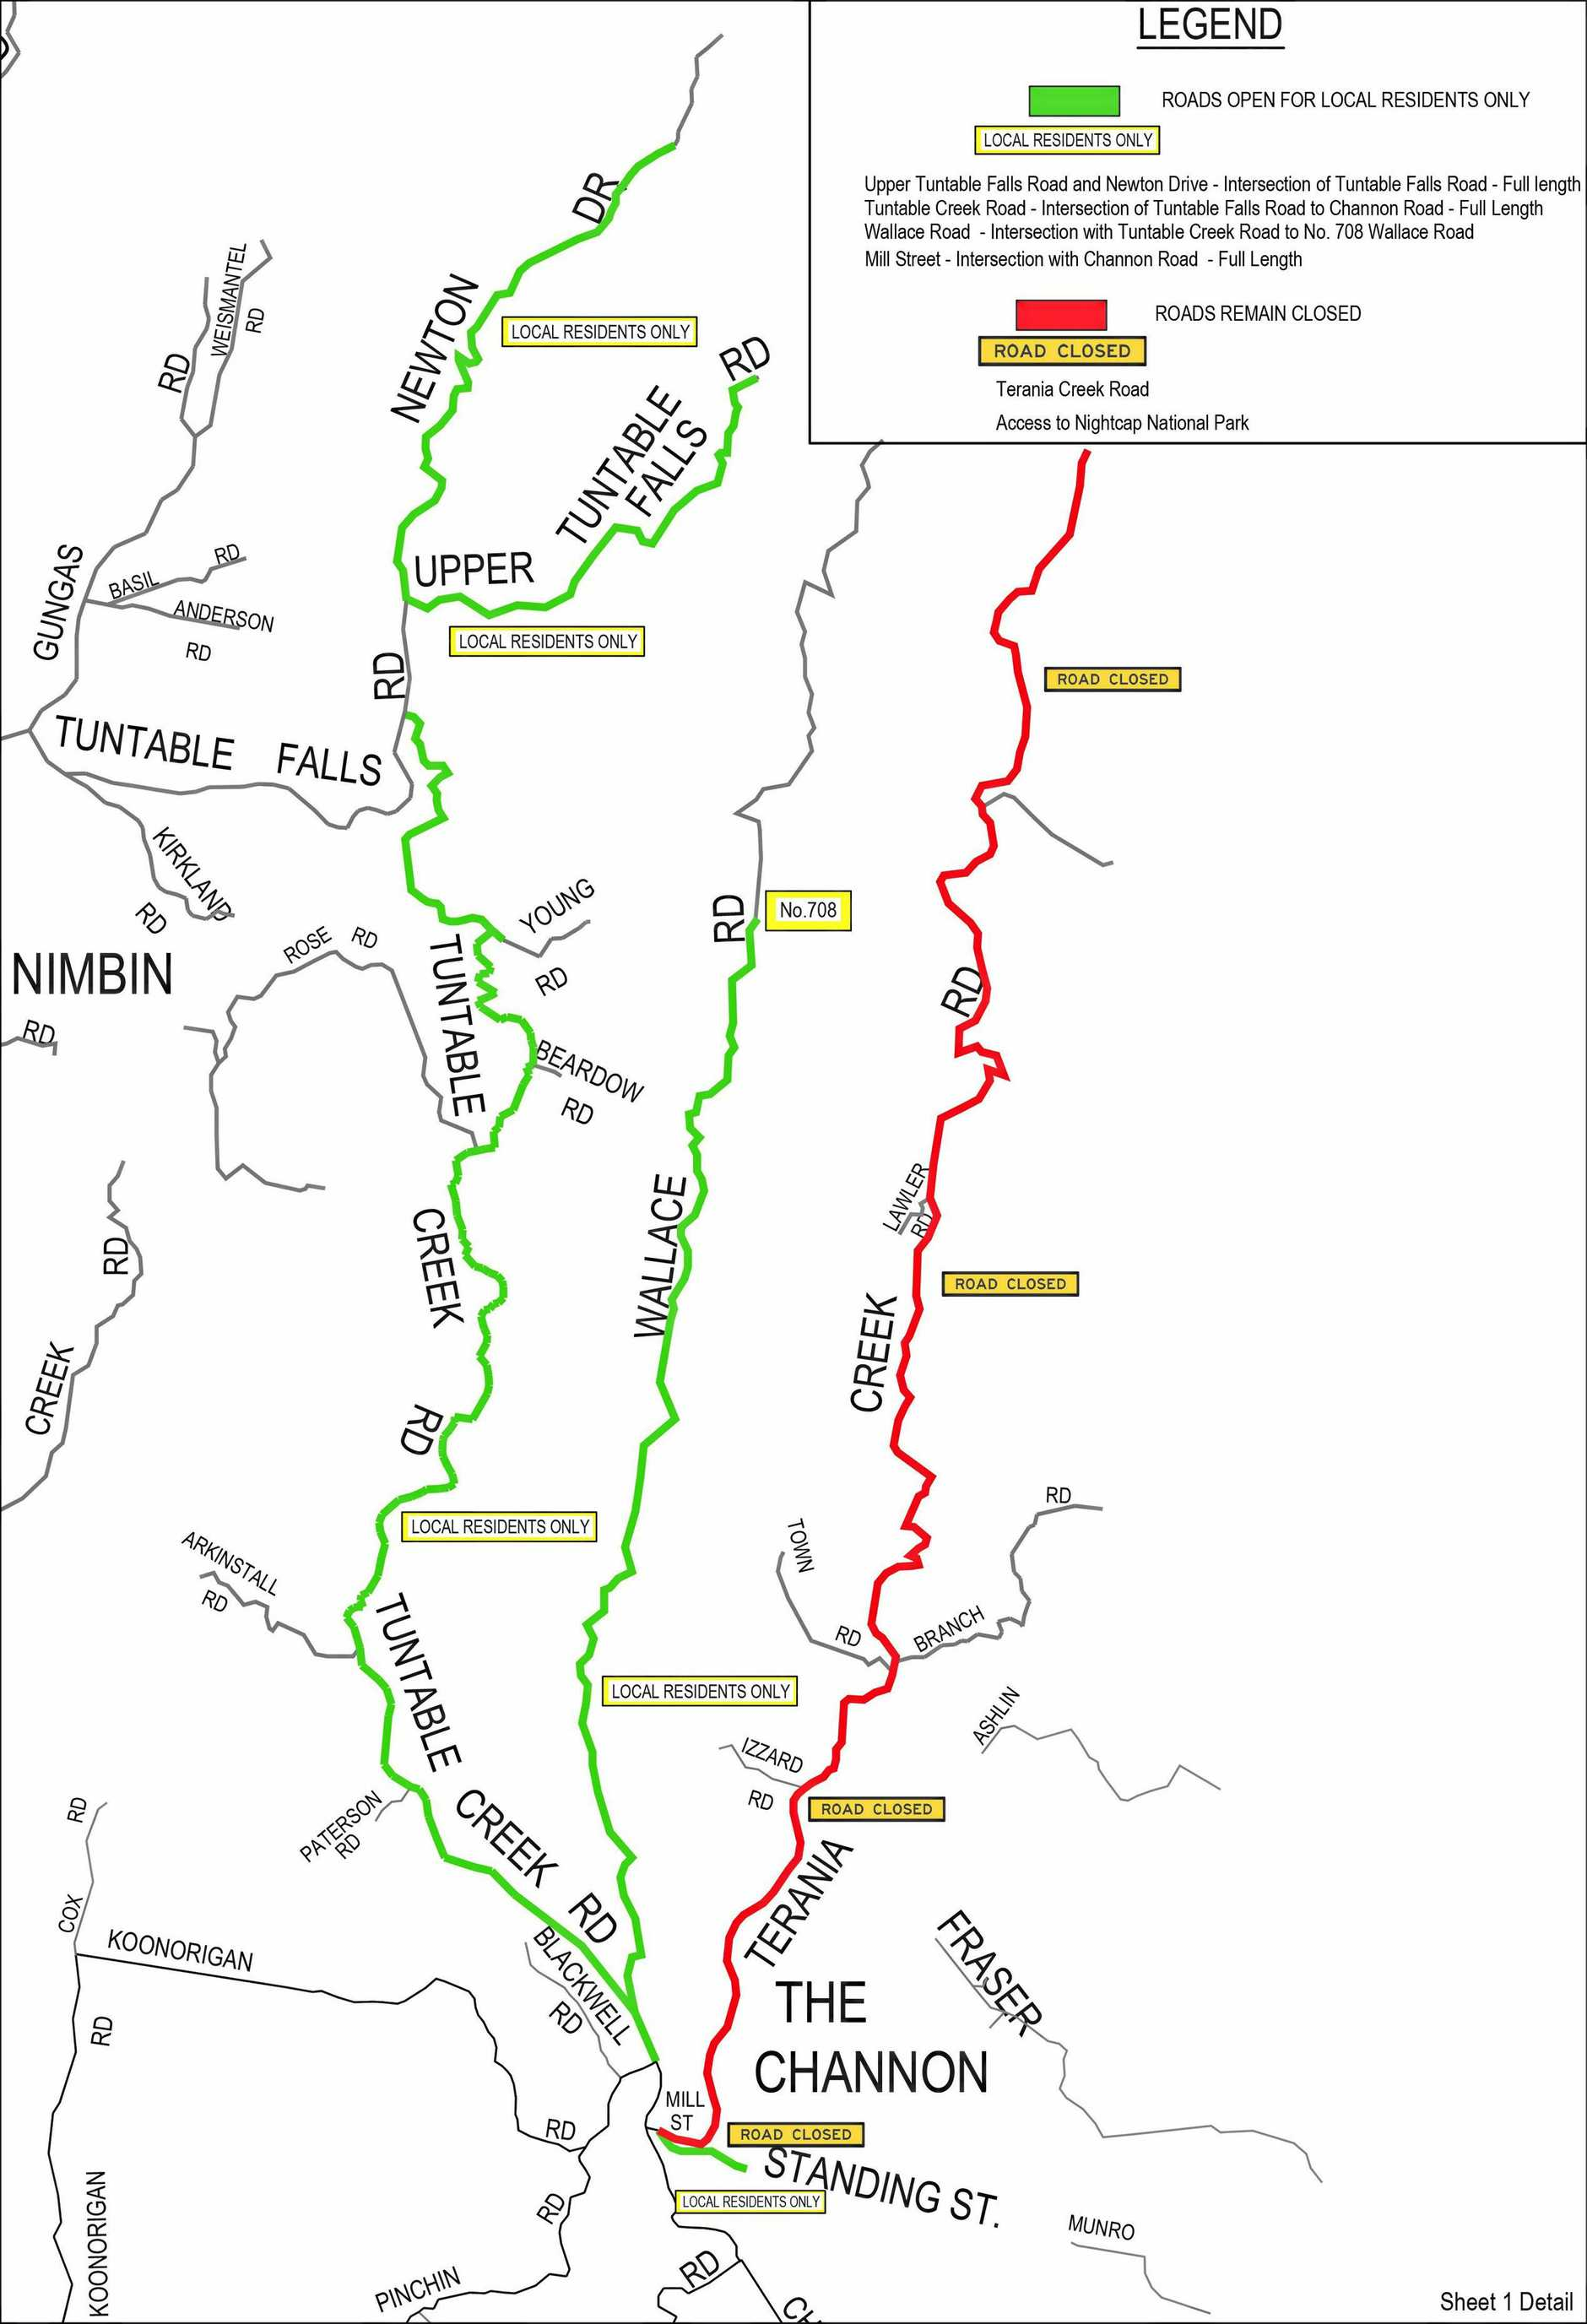 Roads remain closed due to fires.